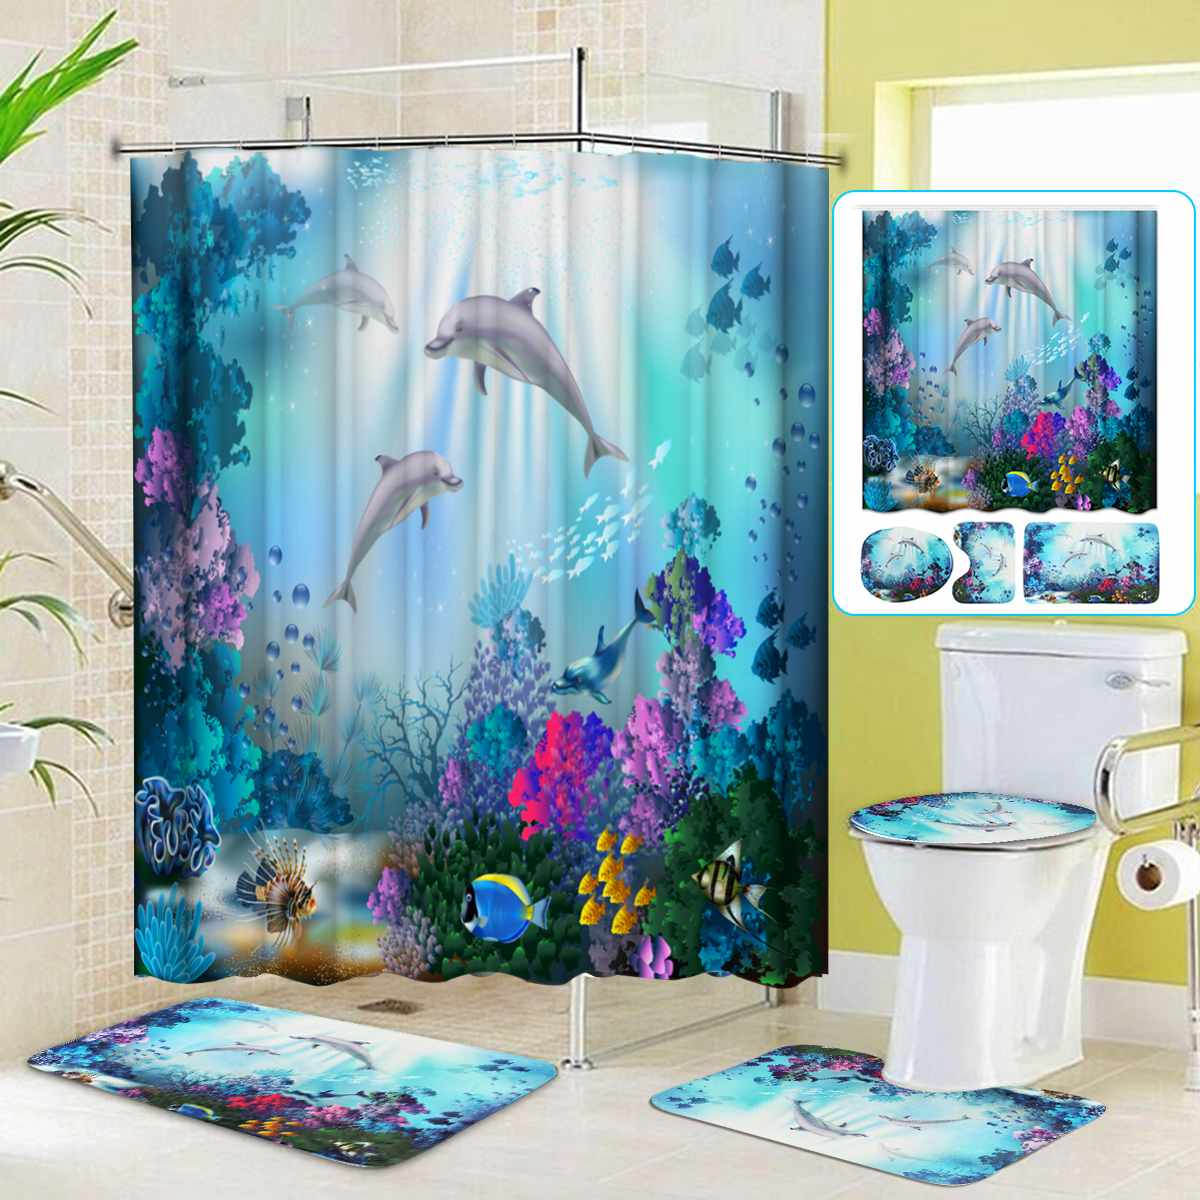 NEW Ocean Dolphin Shower Curtain Polyester Waterproof Curtains + Pedestal Rug Lid Toilet Cover Bath Mat Set For Bathroom Decor